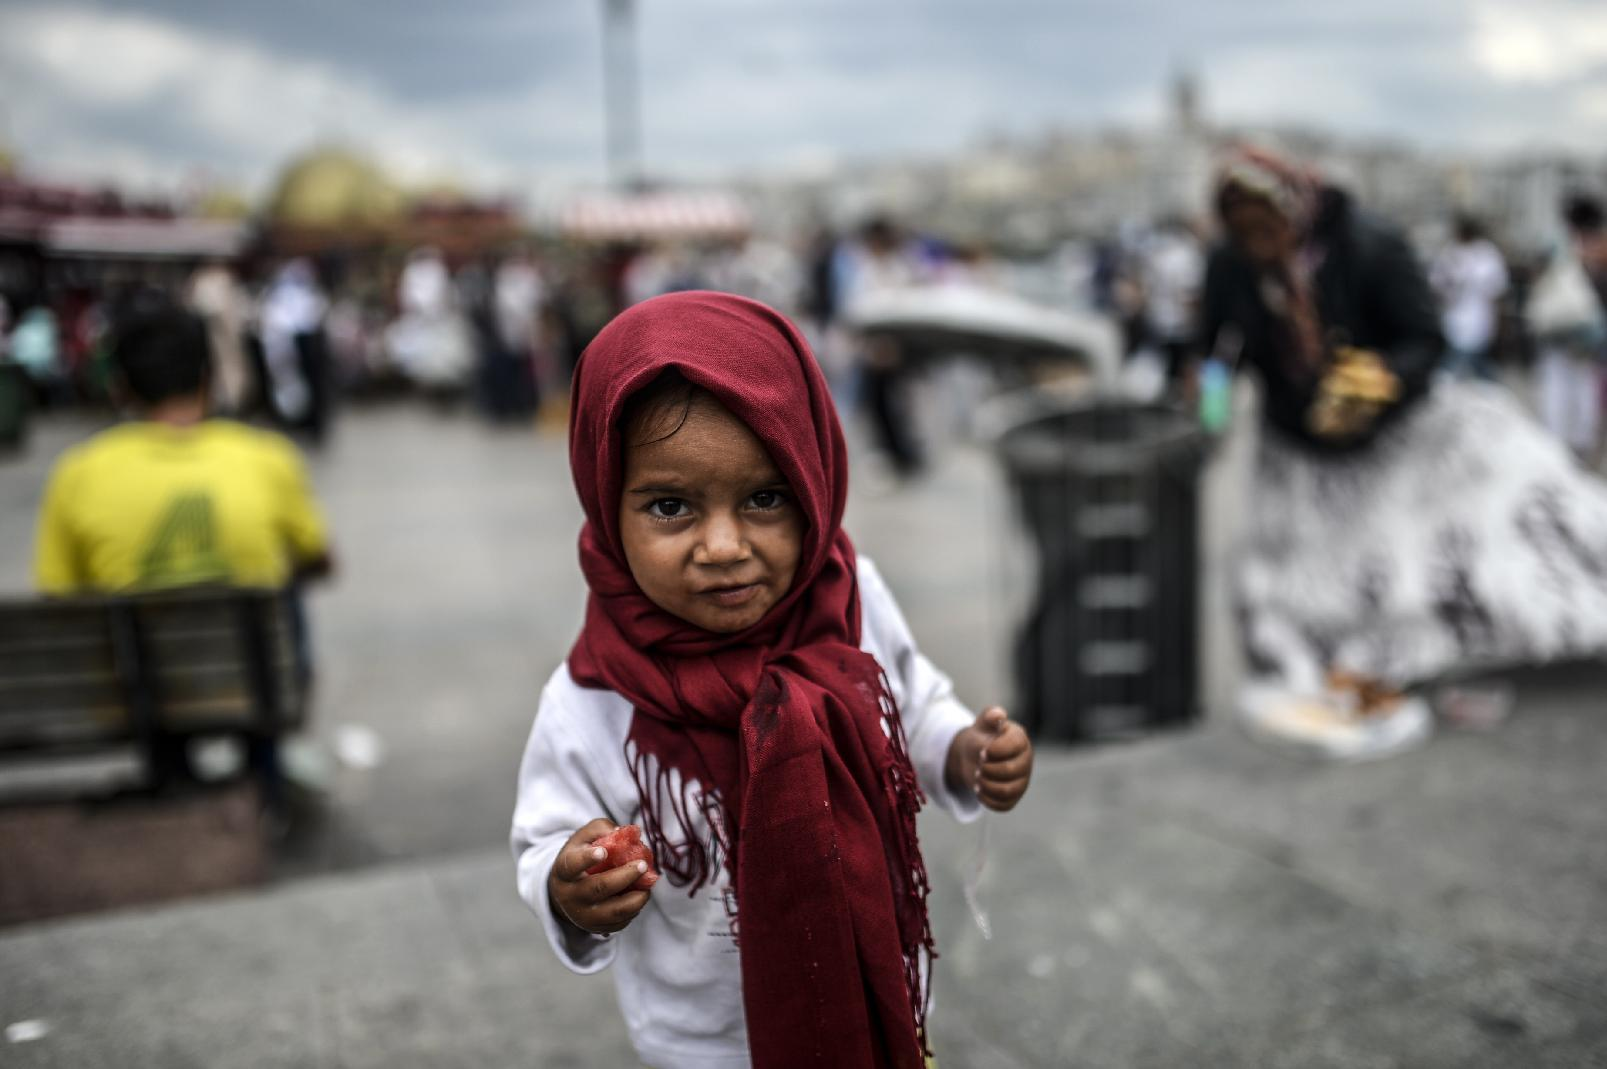 A Syrian refugee child eats food collected from a rubbish bin by her mother (background right), in Istanbul, Turkey, on August 18, 2014 (AFP Photo/Bulent Kilic)